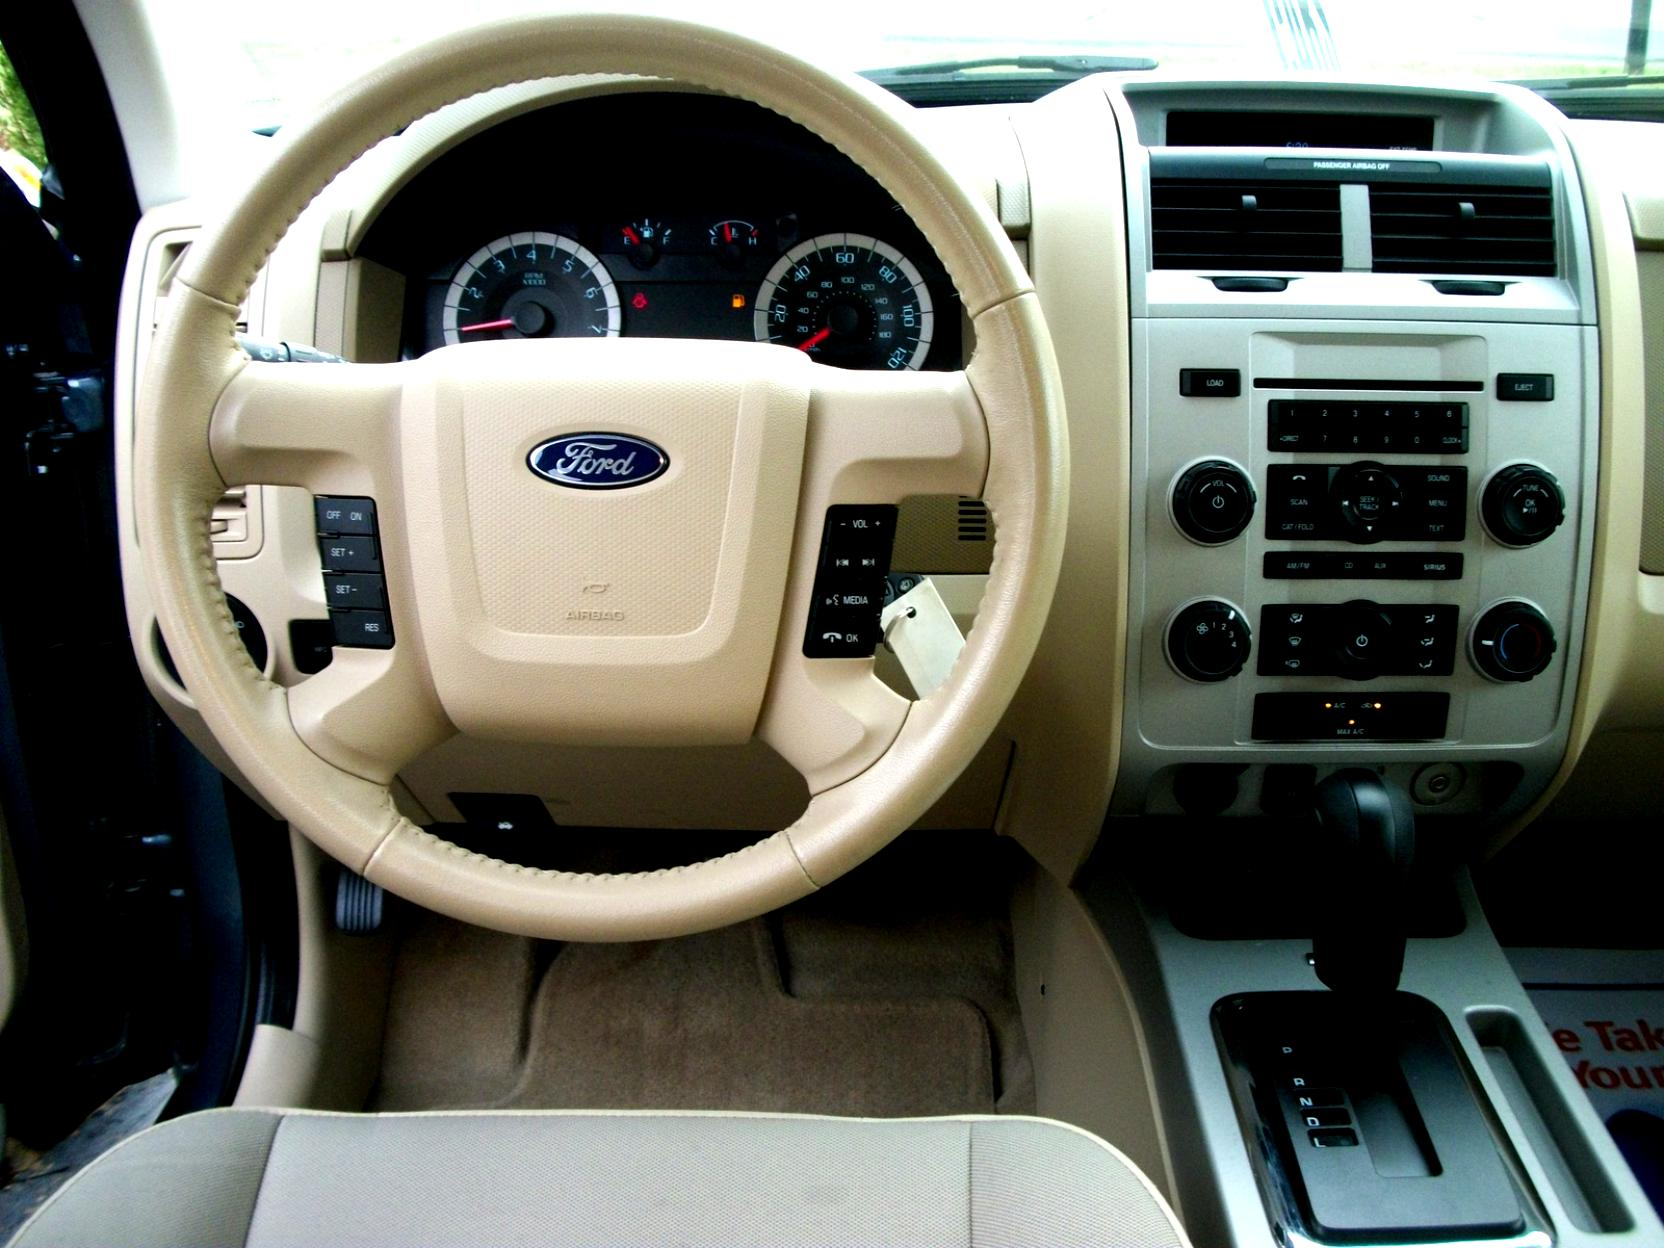 Ford Escape 2008 #4